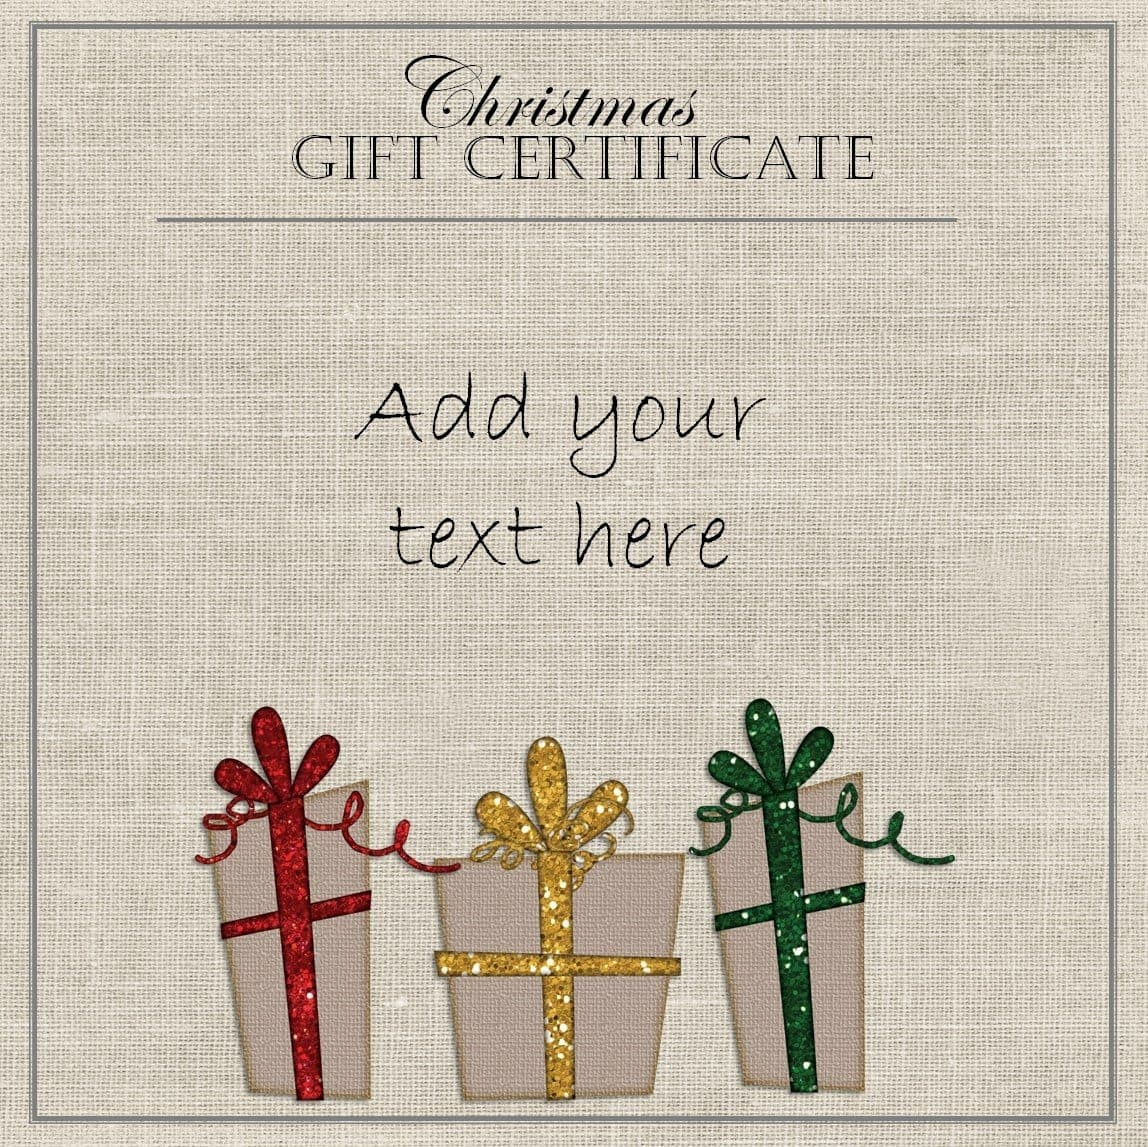 Free Christmas Gift Certificate Template | Customize Online & Download - Free Printable Christmas Gift Voucher Templates